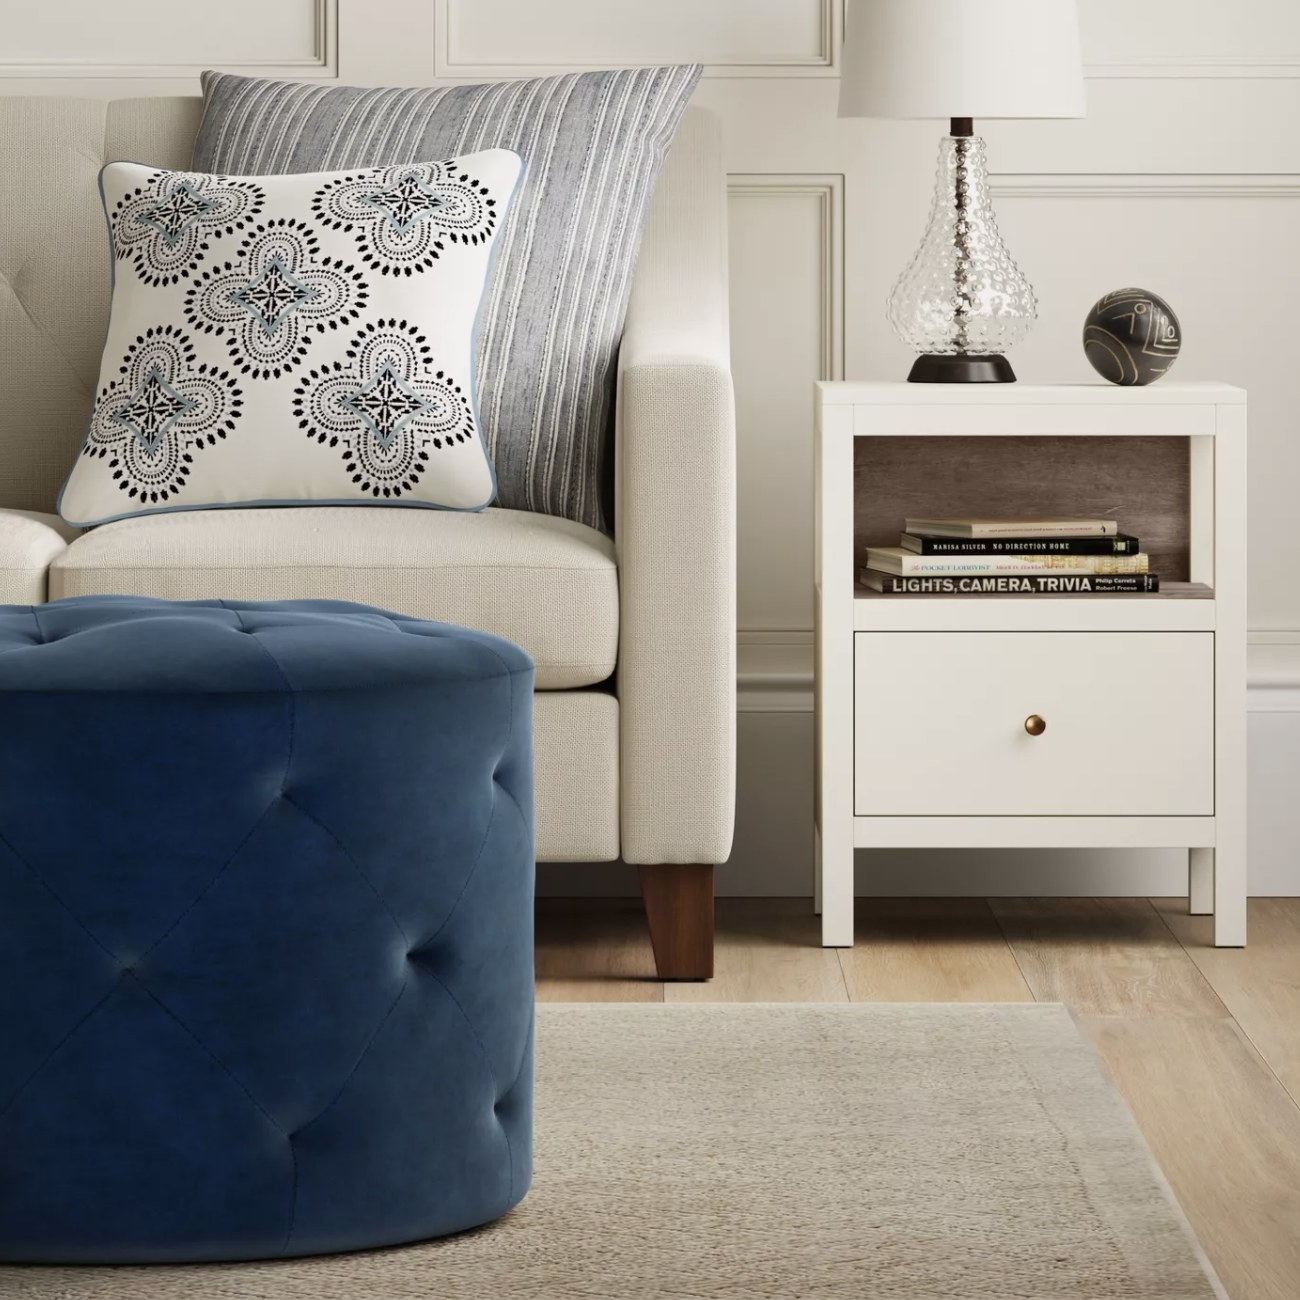 A dark blue tufted ottoman in a living space